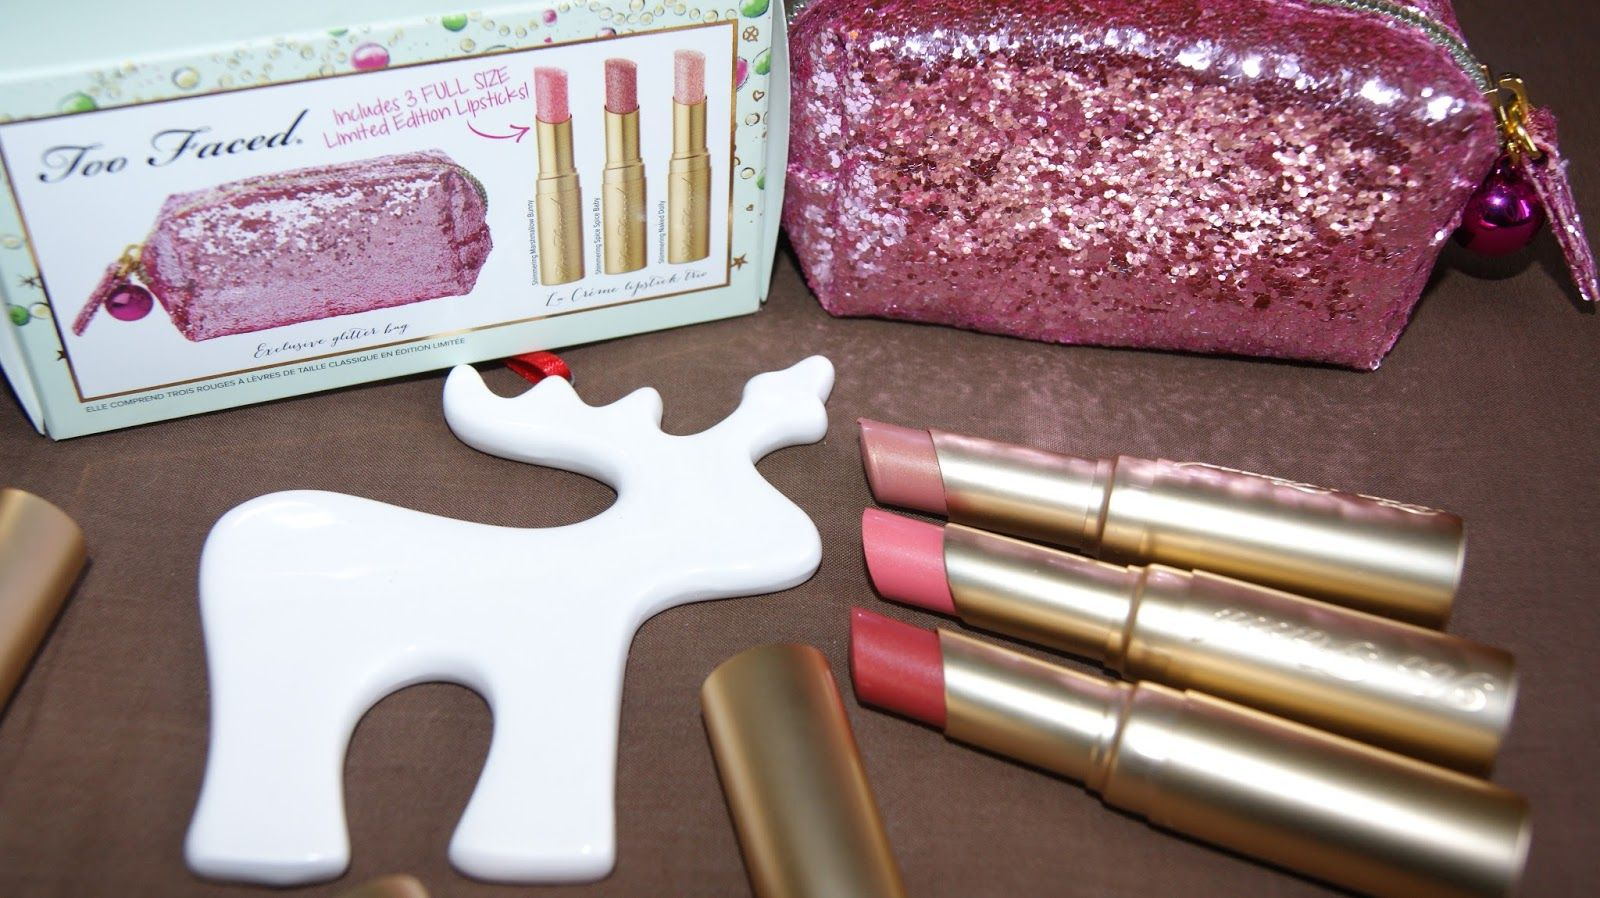 A Life With Frills: BEAUTY REVIEW: TOO FACED UNDER THE MISTLETOE GIFT ...